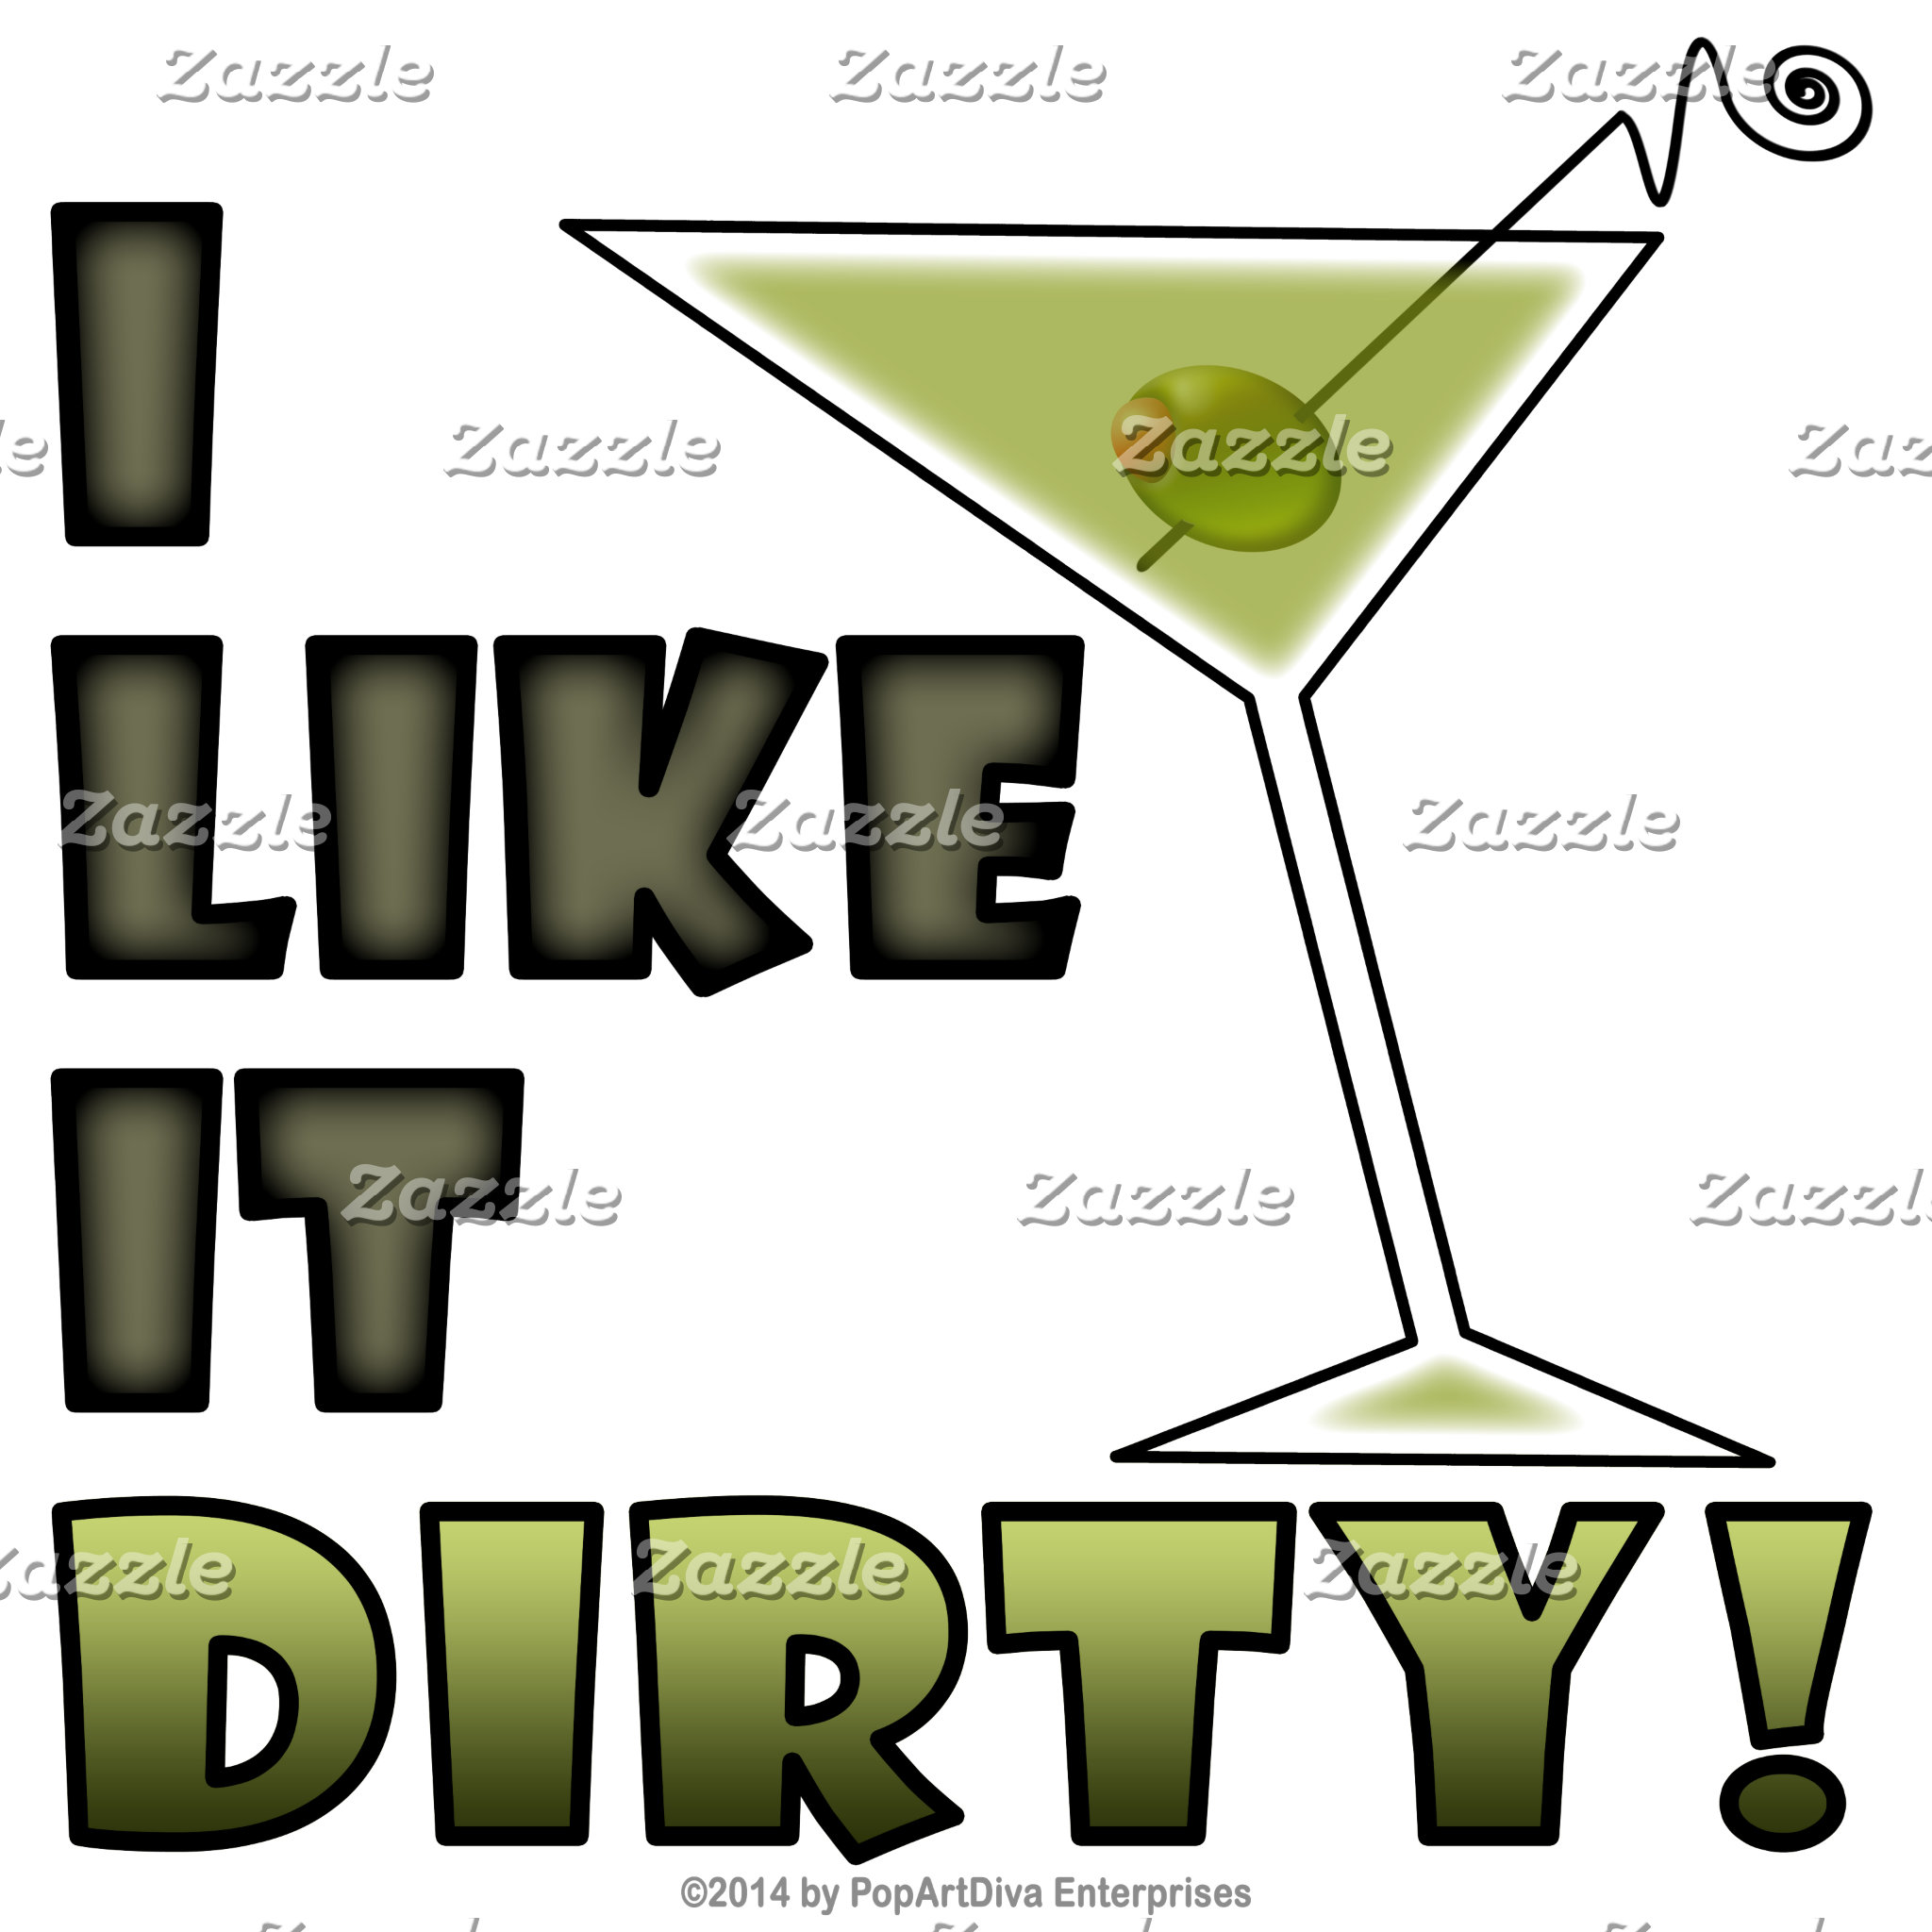 aa. I LIKE IT DIRTY - DIRTY MARTINI